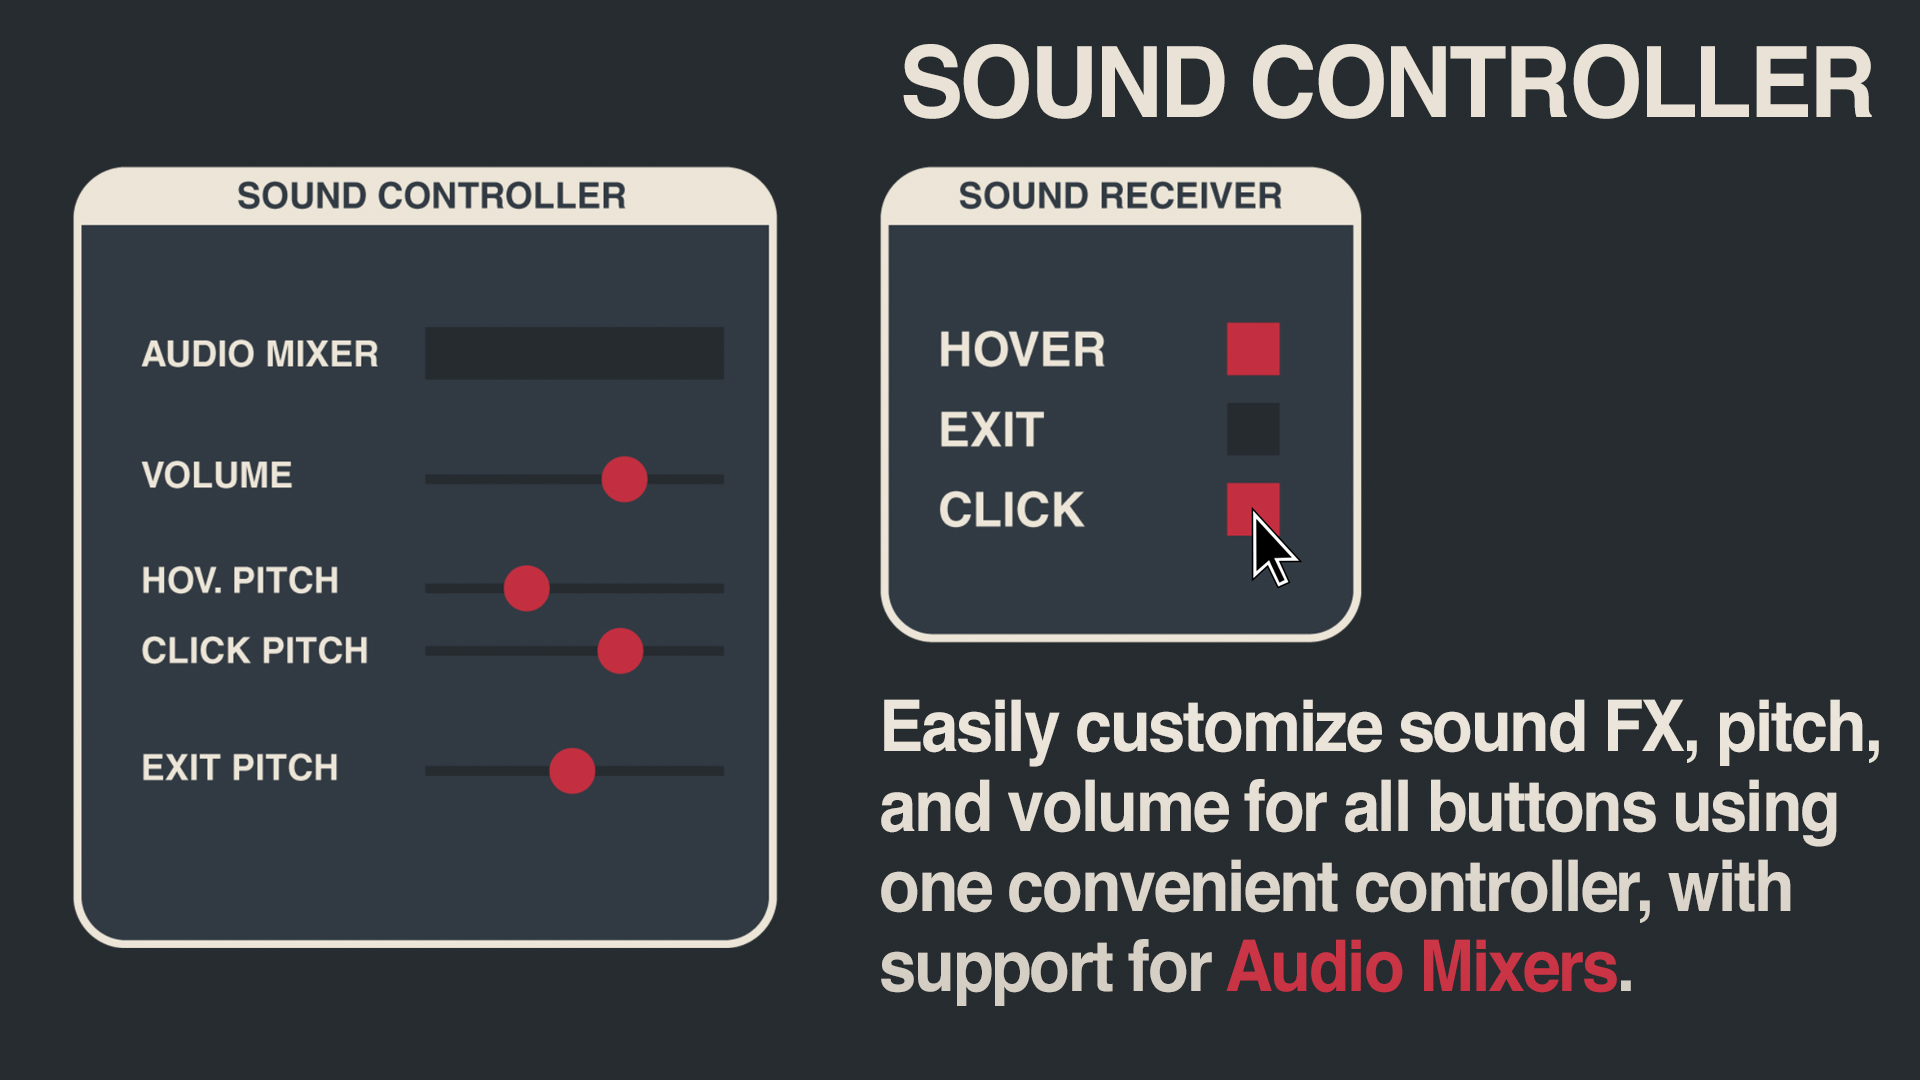 SoundController